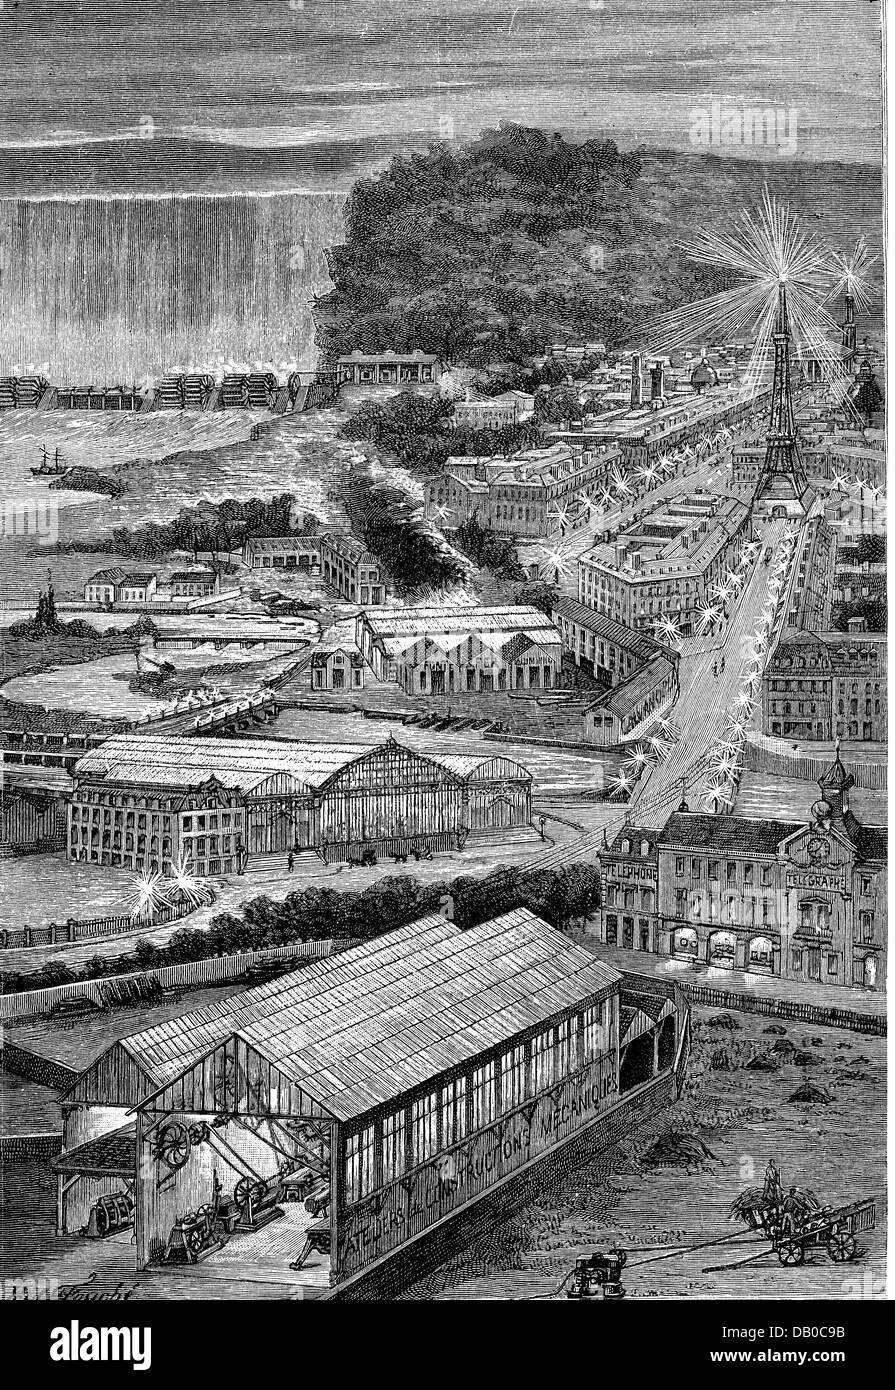 energy, electricity, model city, supplied with electric power generated from waterfall, late 19th century, 19th - Stock Image